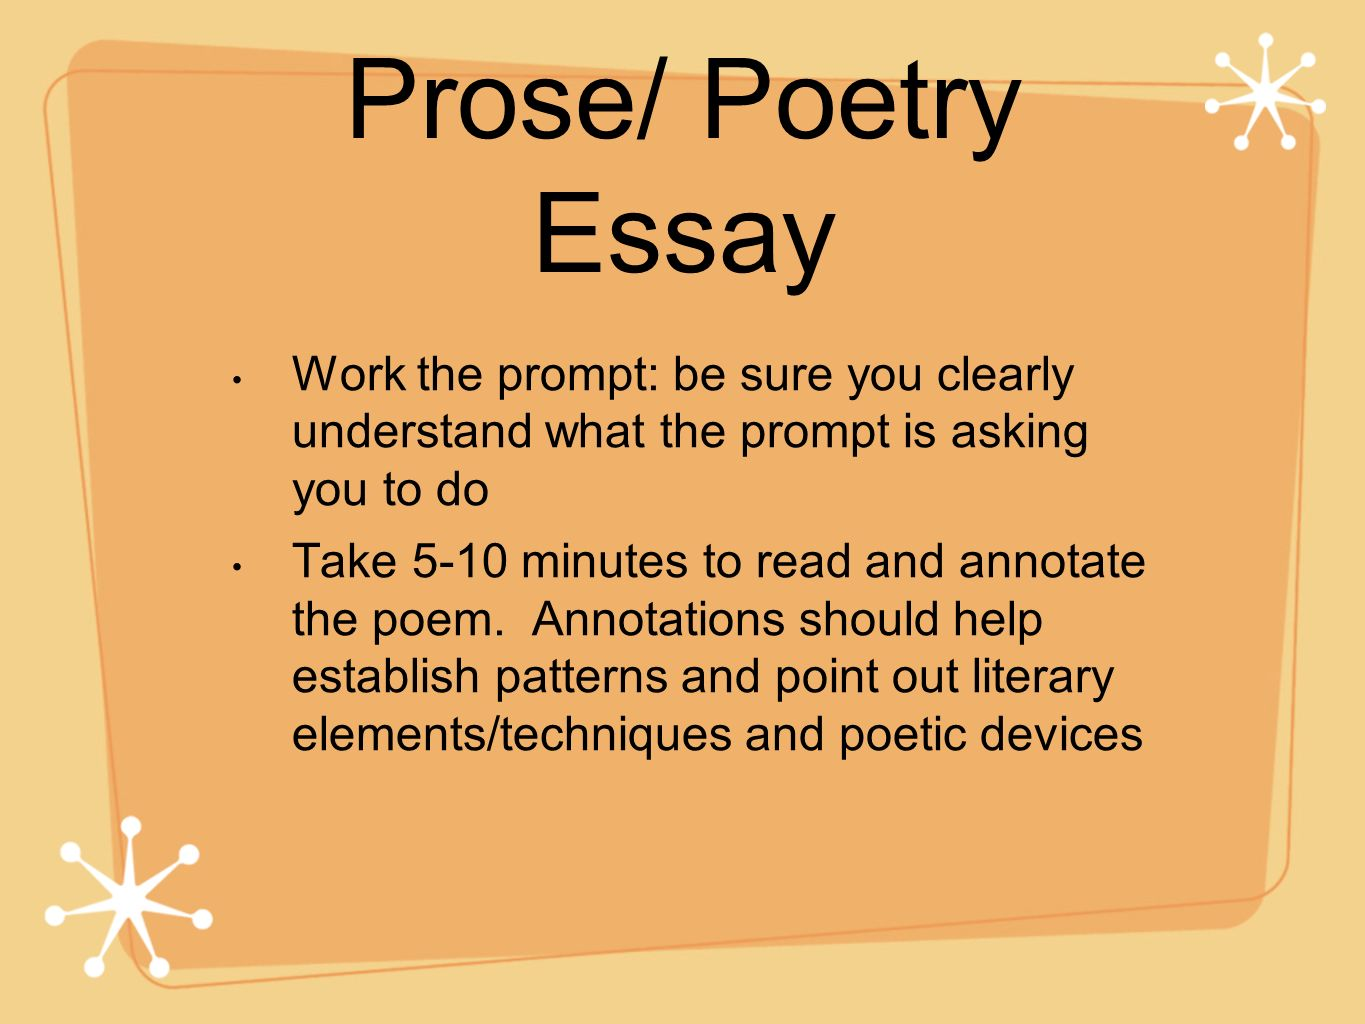 prose poem essay The essay is written in a progressive manner that anticipates its audience for example eureka: a prose poem - full text from the 1848 edition.